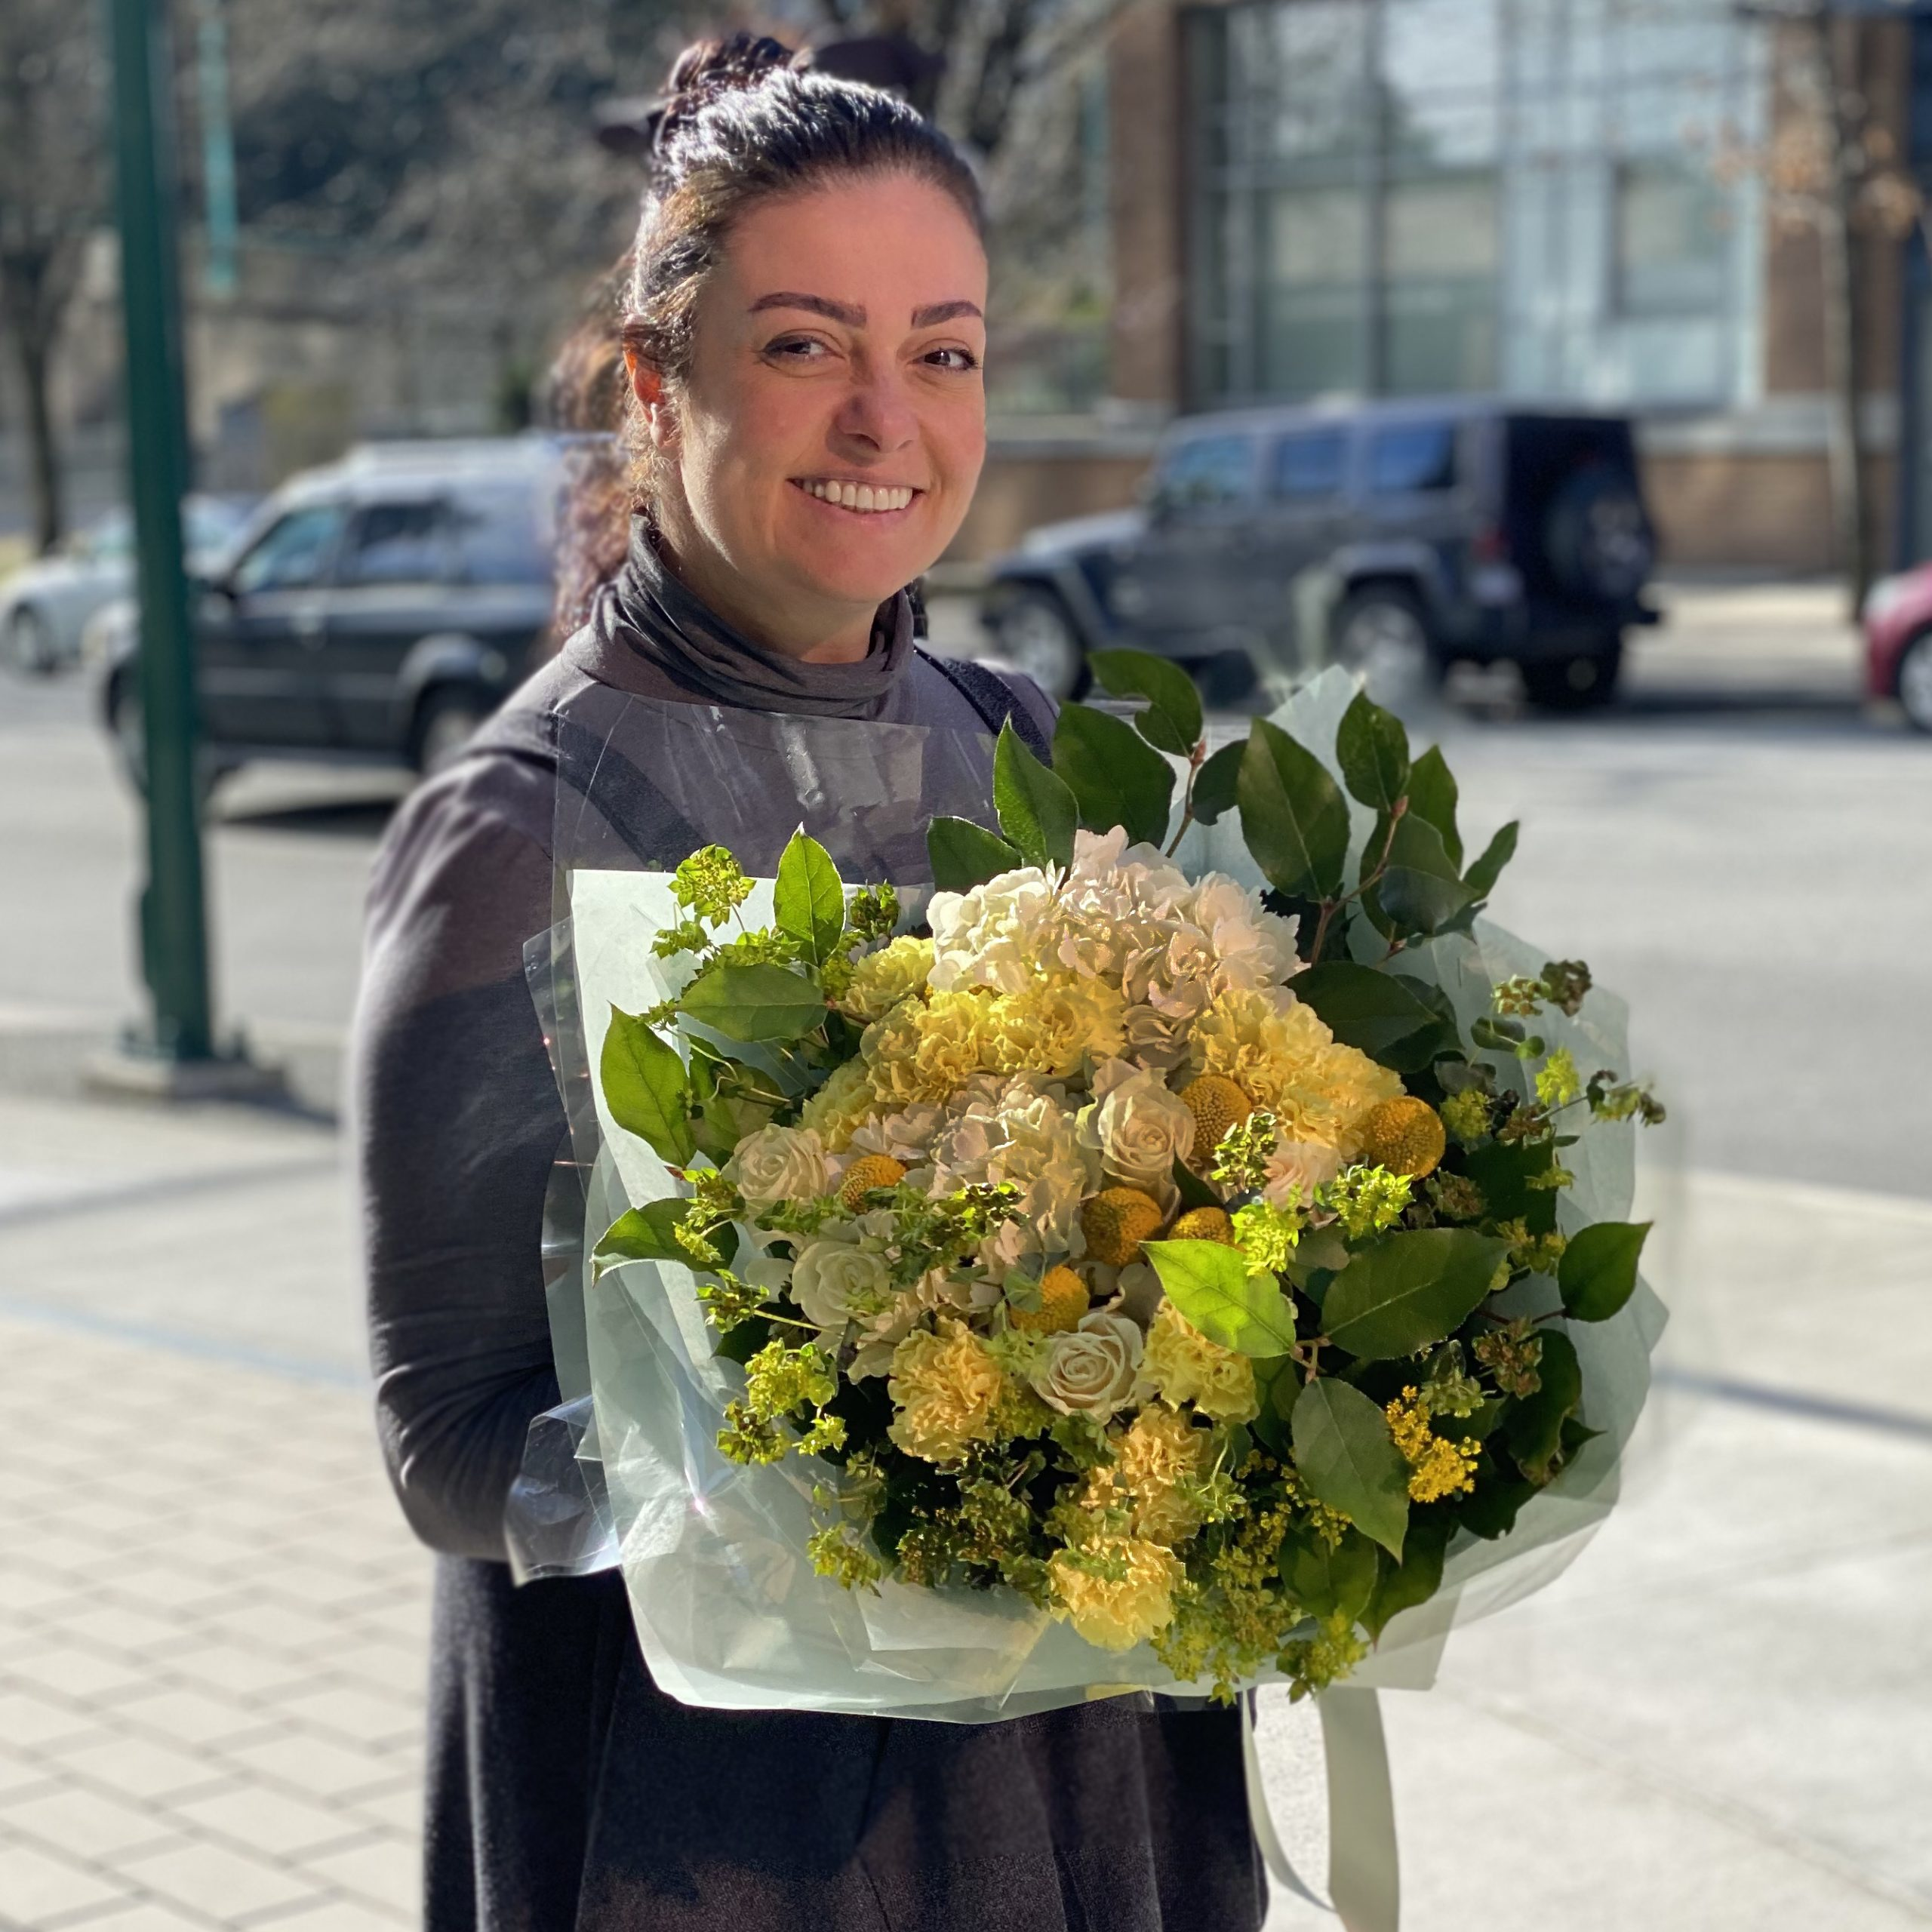 Buy flower and bouquet in Vancouver